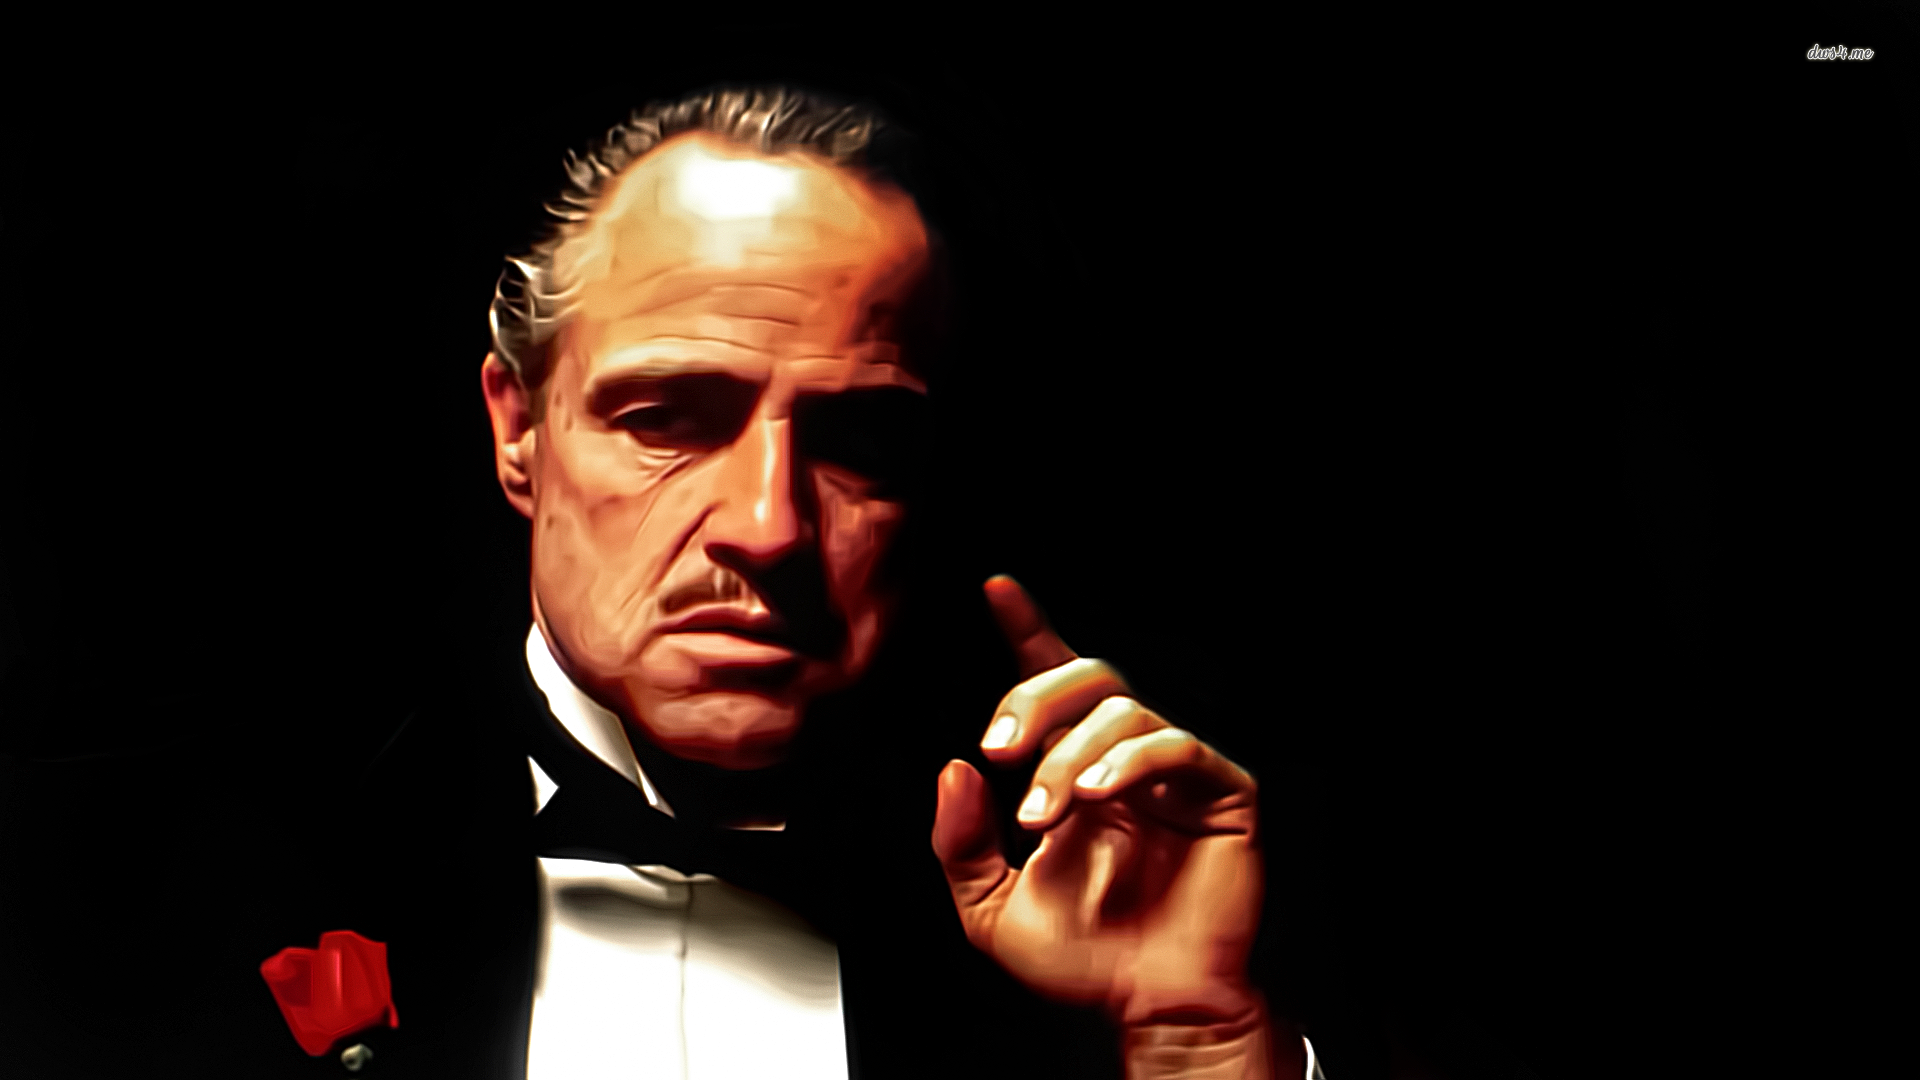 Top 10 Greatest Gangster Movies For Tough GuysMr. RauRauR